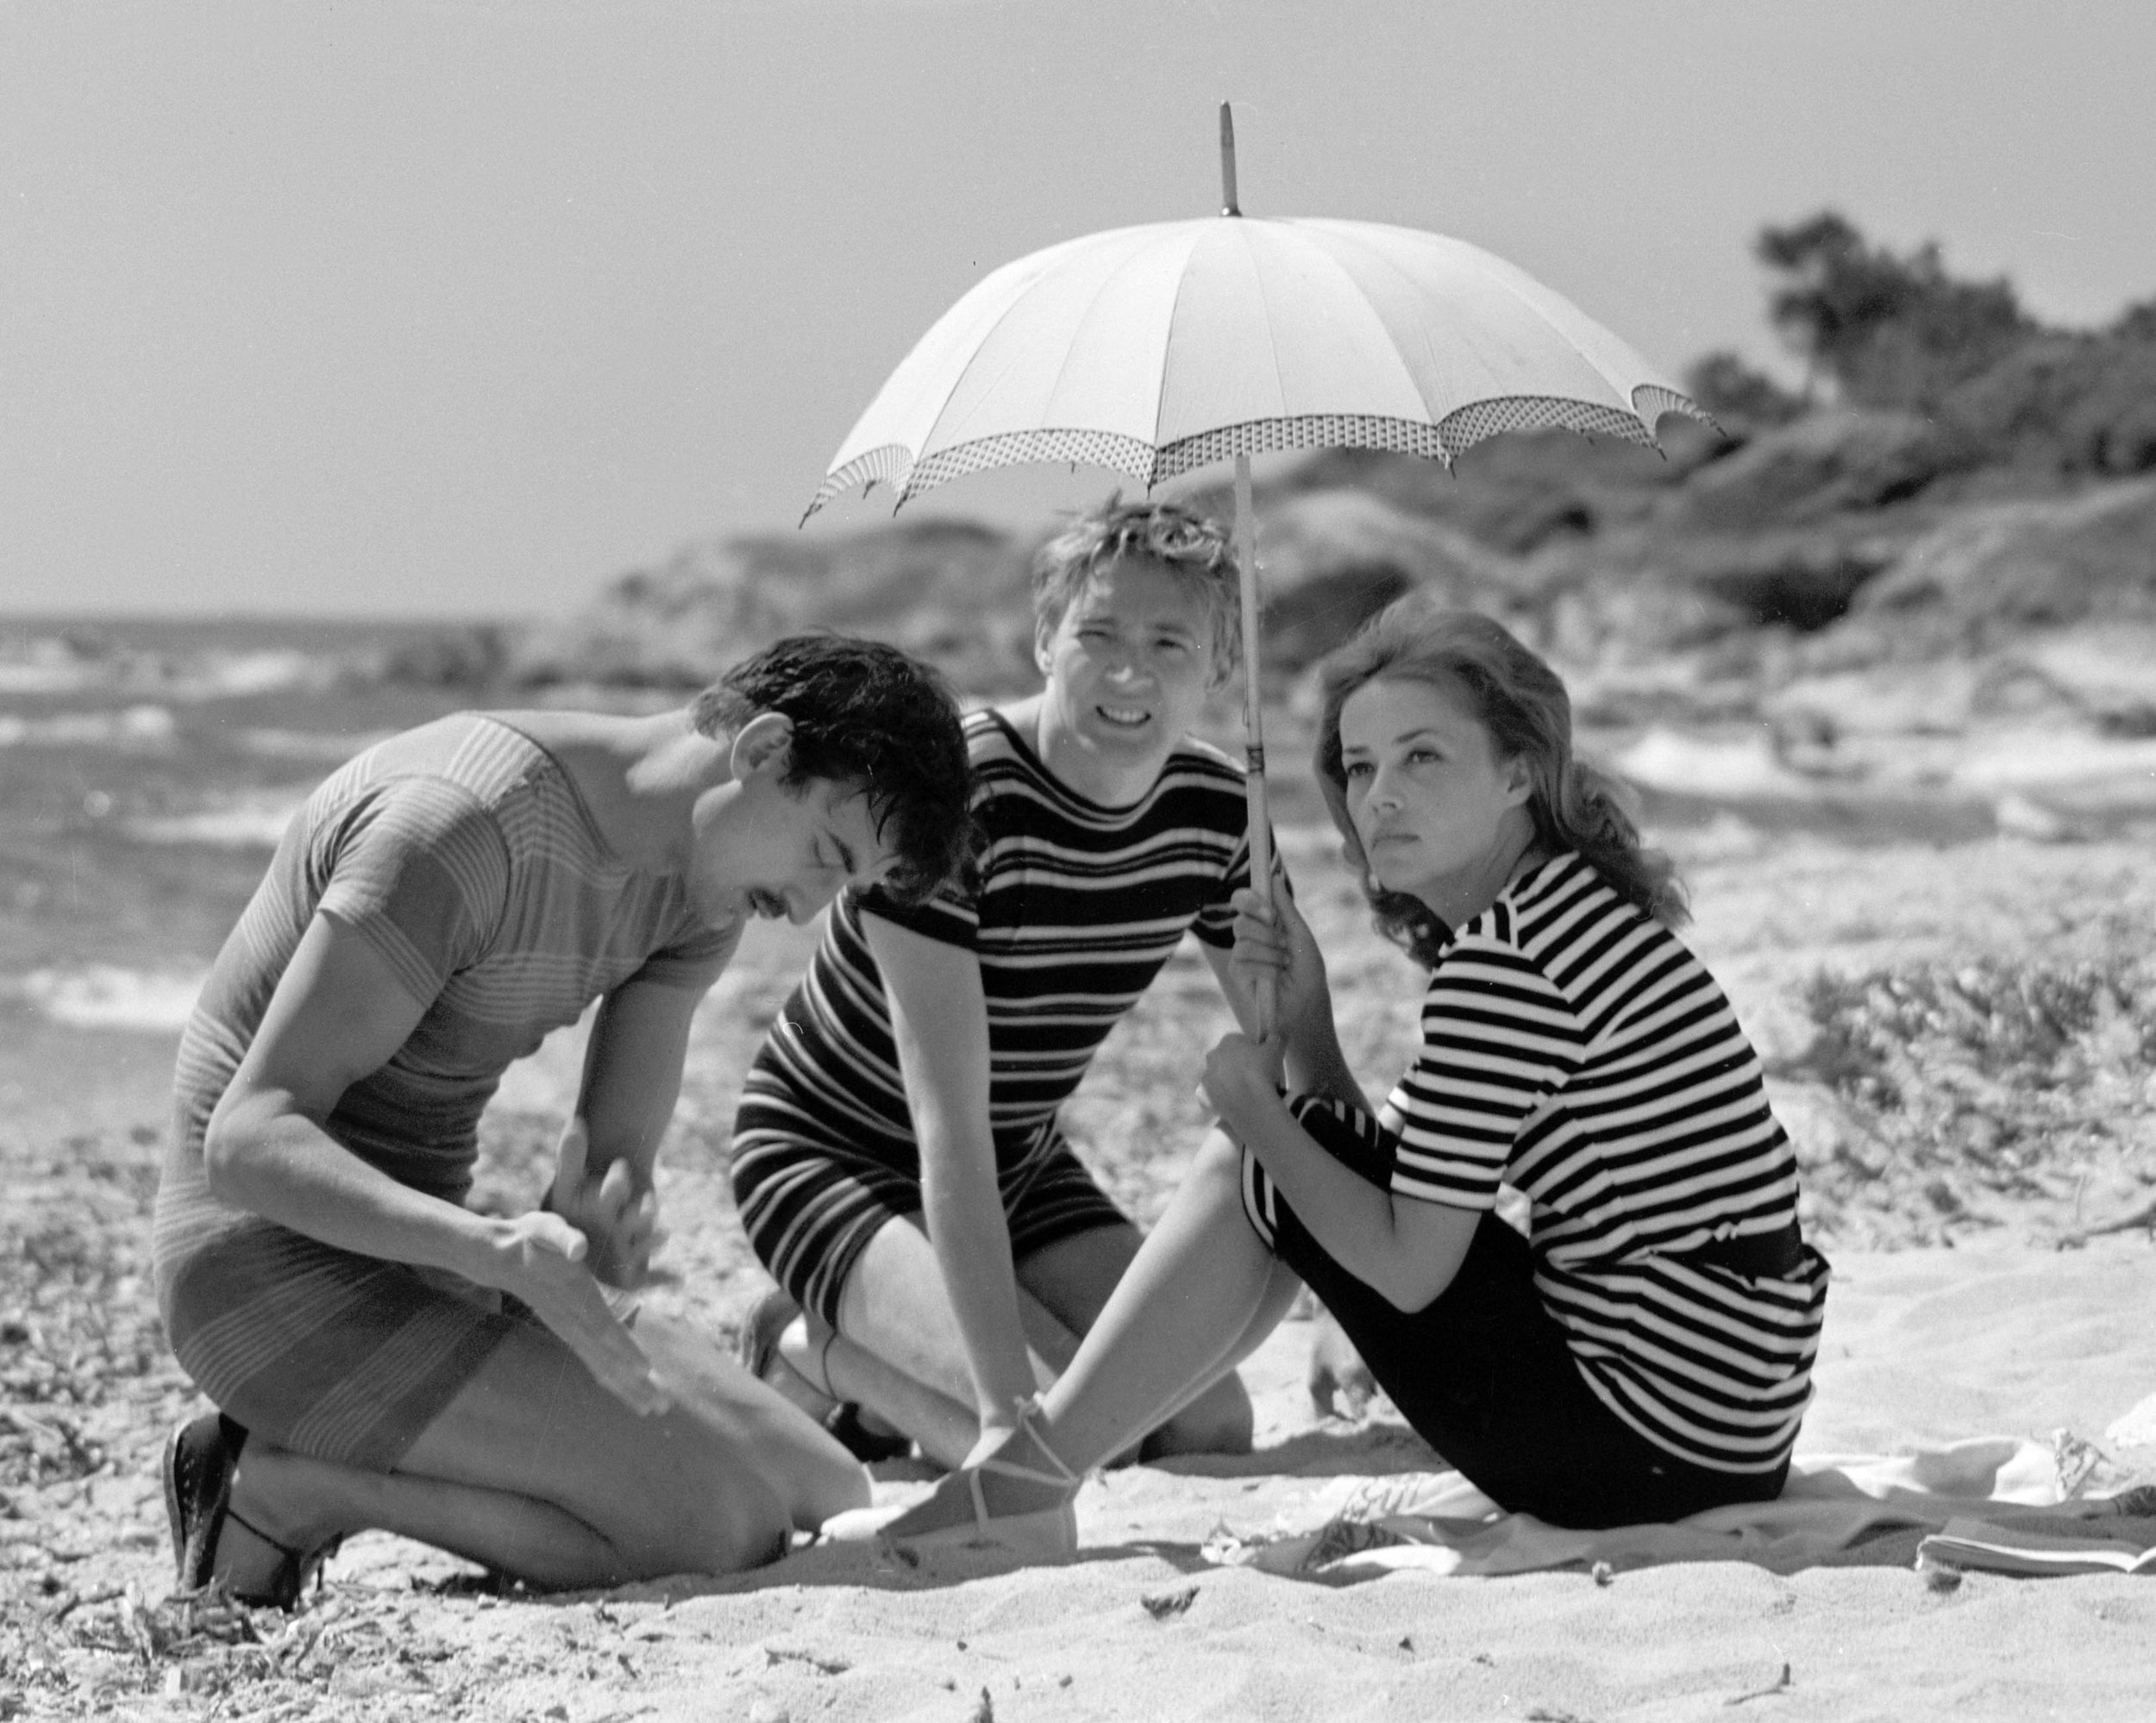 A shot from Jules et Jim (dir. Francois Truffaut), which is one of the 6 films to be screened.